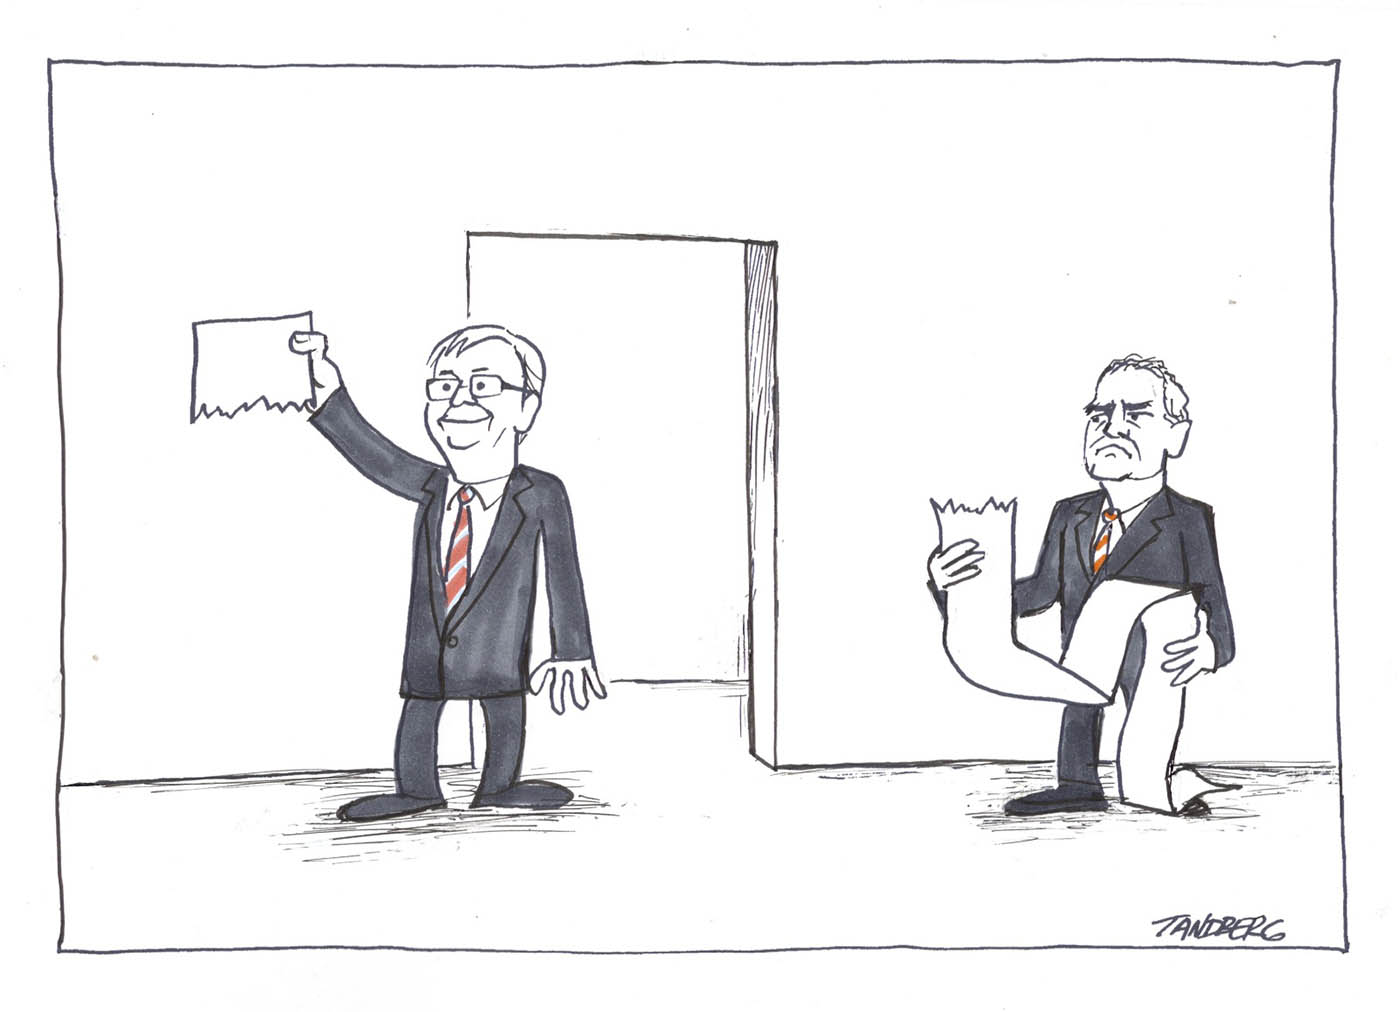 A mostly black and white cartoon depicting Kevin Rudd and Ken Henry. Kevin Rudd has emerged from a doorway, holding aloft a short piece of paper with a torn bottom edge. He smiles triumphantly. To the right of the doorway stands Ken Henry, holding a very long piece of paper with a torn top edge. He looks annoyed. Both men wear dark suits with red and white striped ties.  - click to view larger image